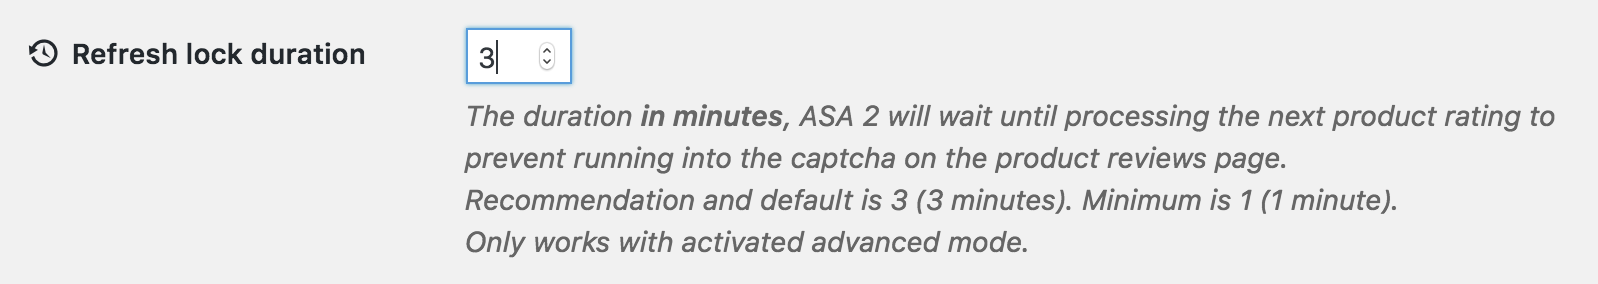 ASA 2 advanced ratings refresh lock duration